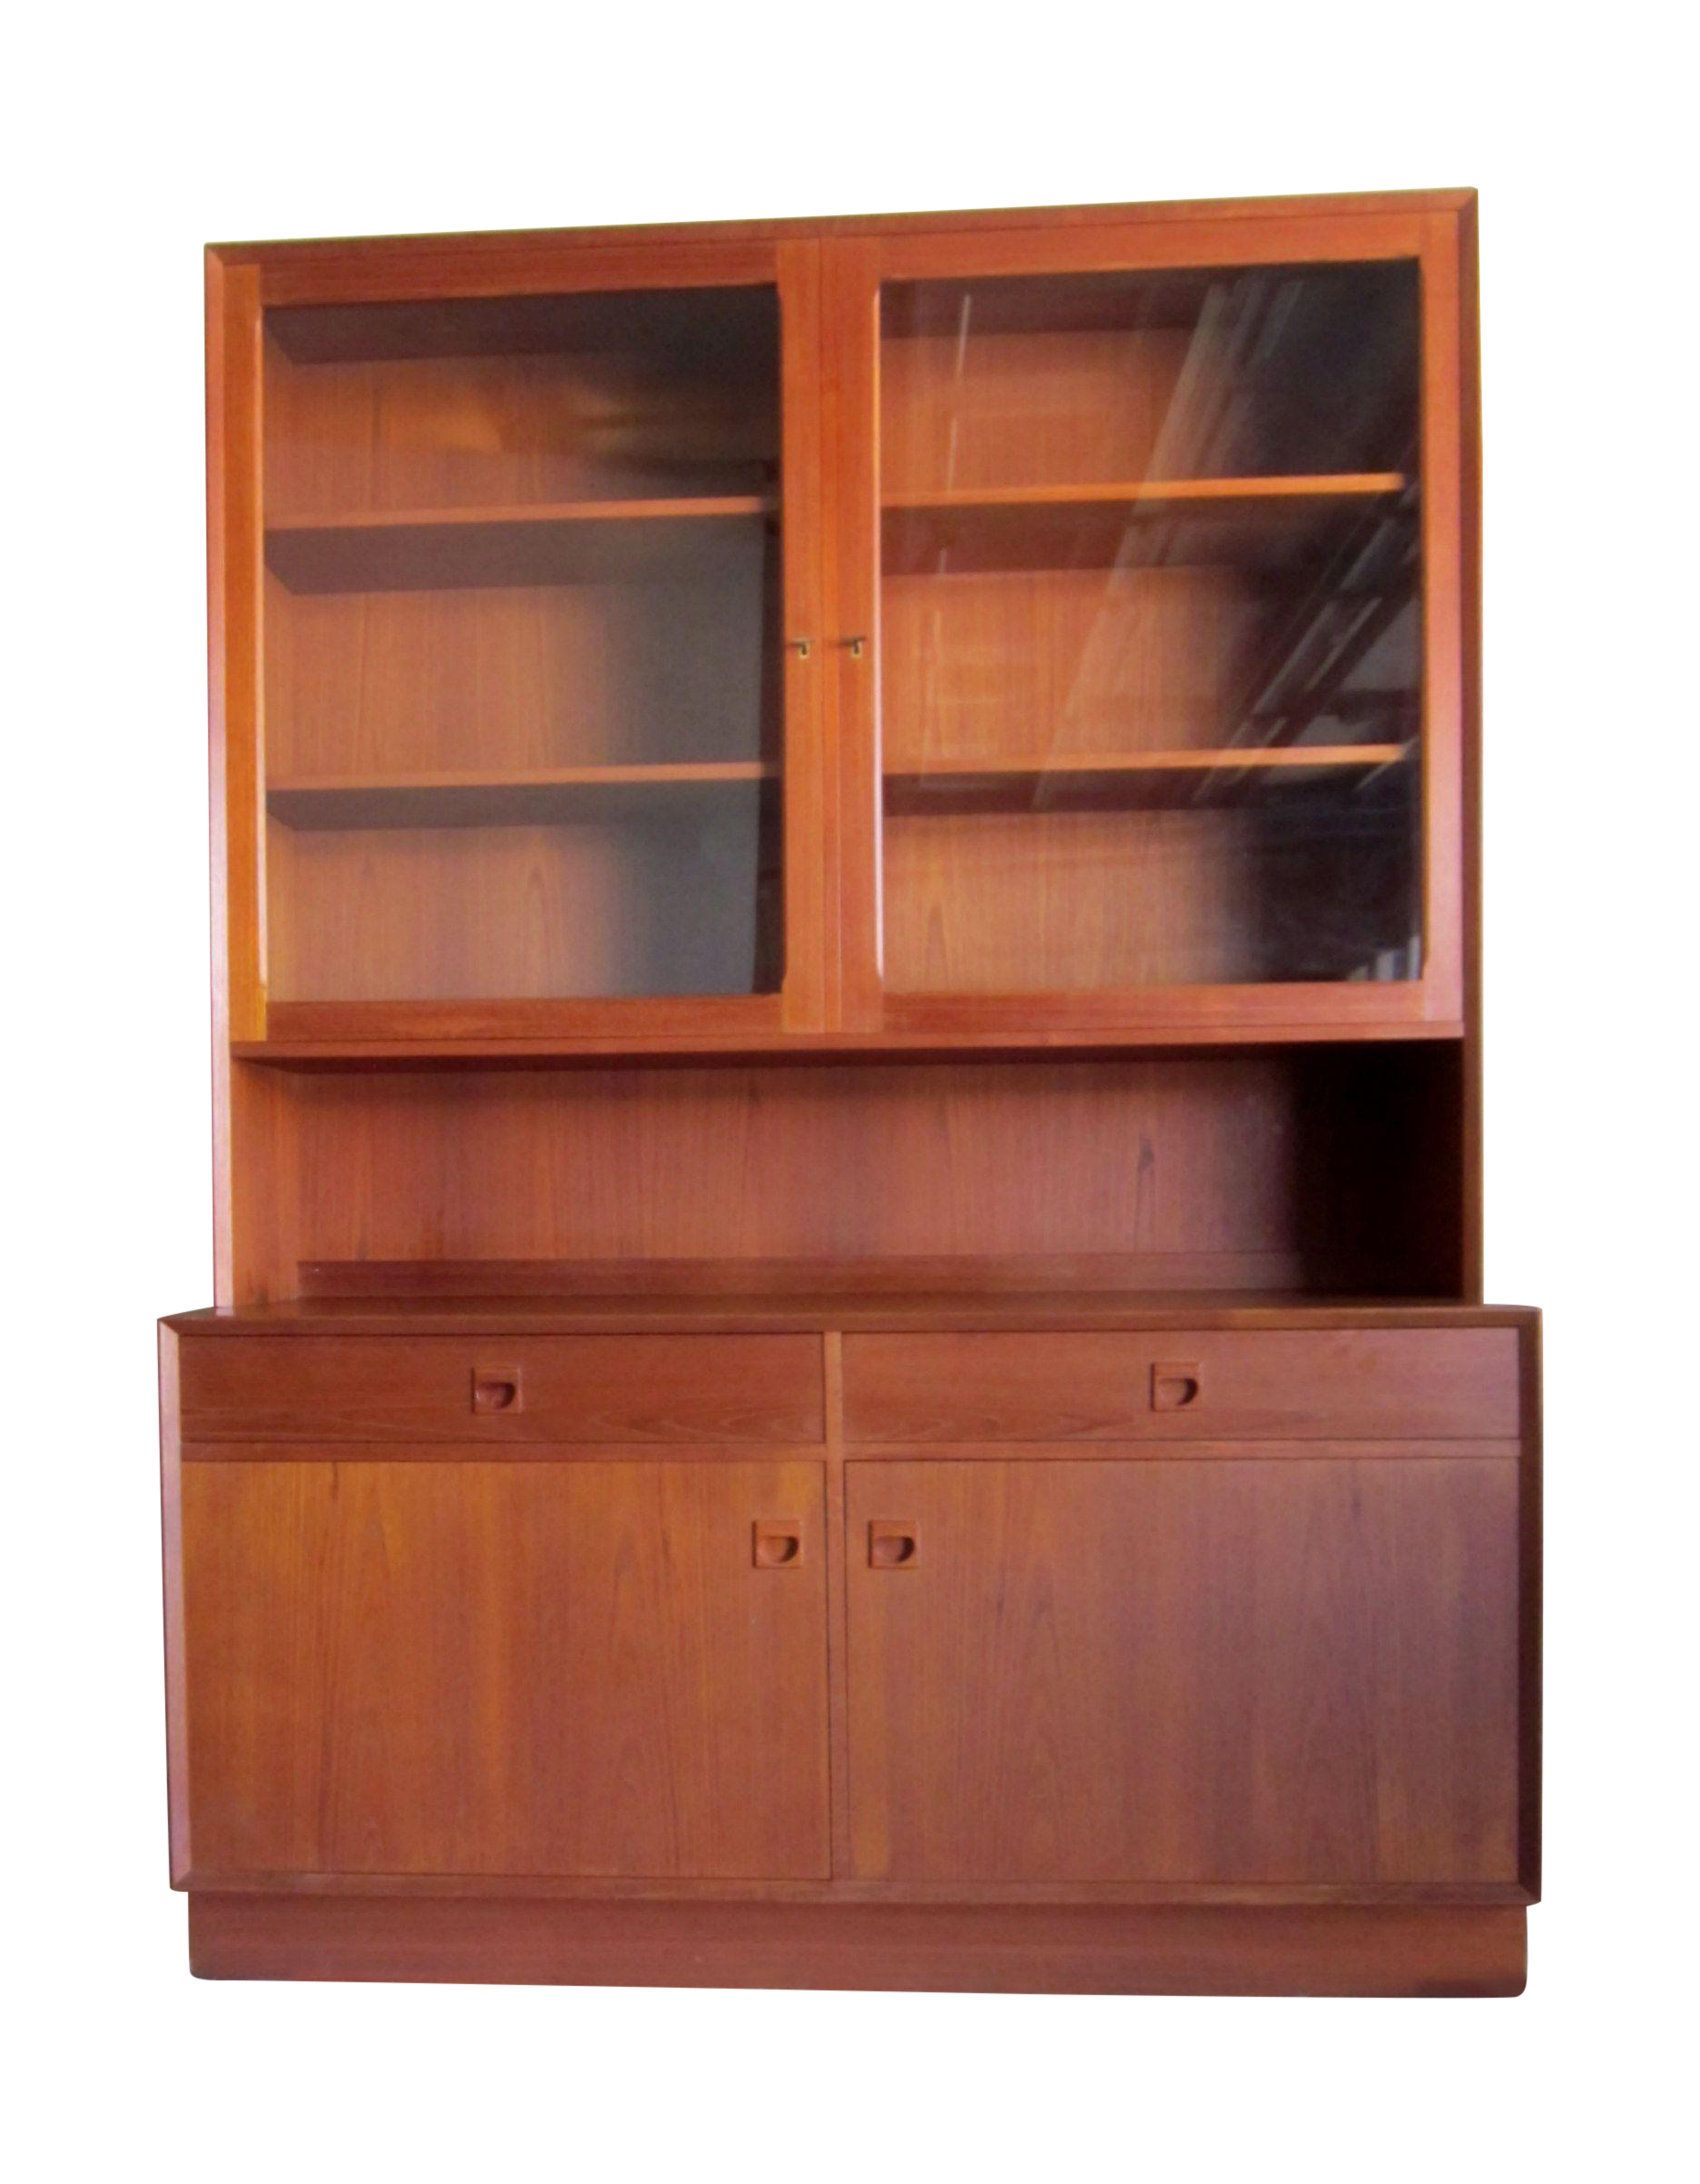 Teak China Cabinet Hutch Bookshelf Credenza on Chairish.com ...